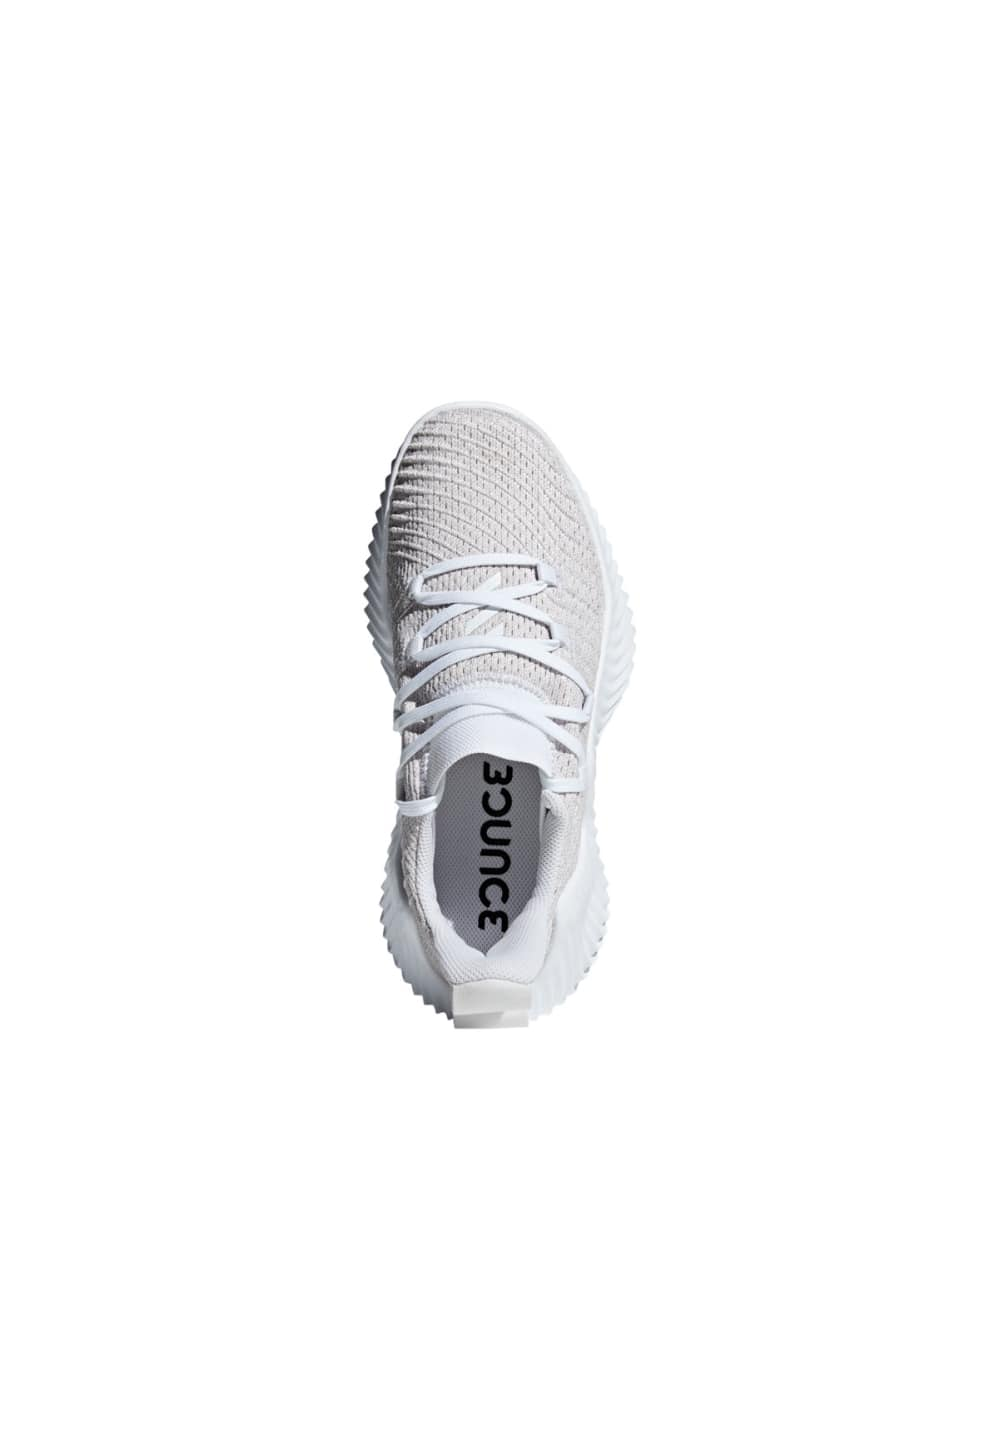 08c08c0ed080f adidas AlphaBOUNCE TRAINER W - Fitness shoes for Women - White